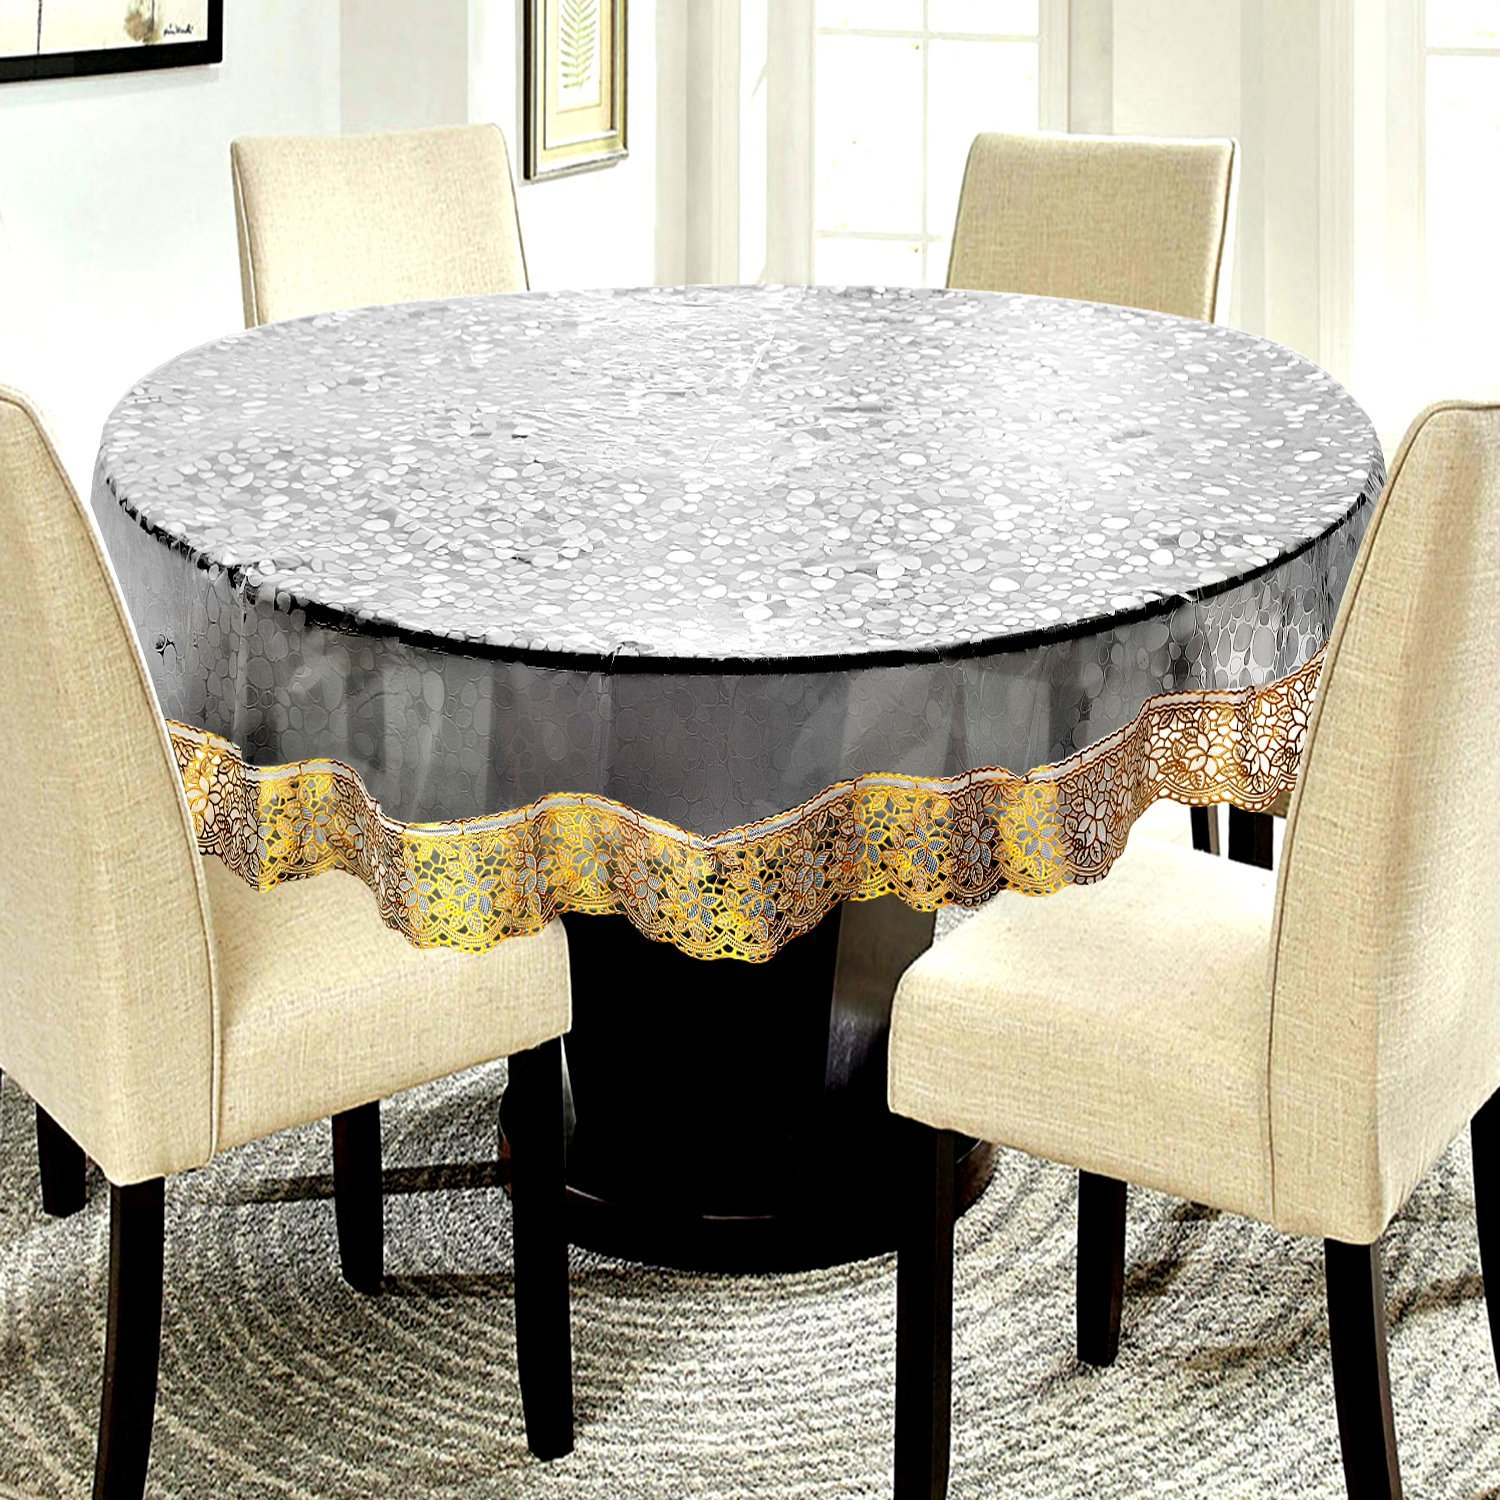 save off a74c8 6936f E-Retailer PVC Waterproof 6 Seater Round Table Cover with Golden Lace Coin  Design Pattern - 72-inch